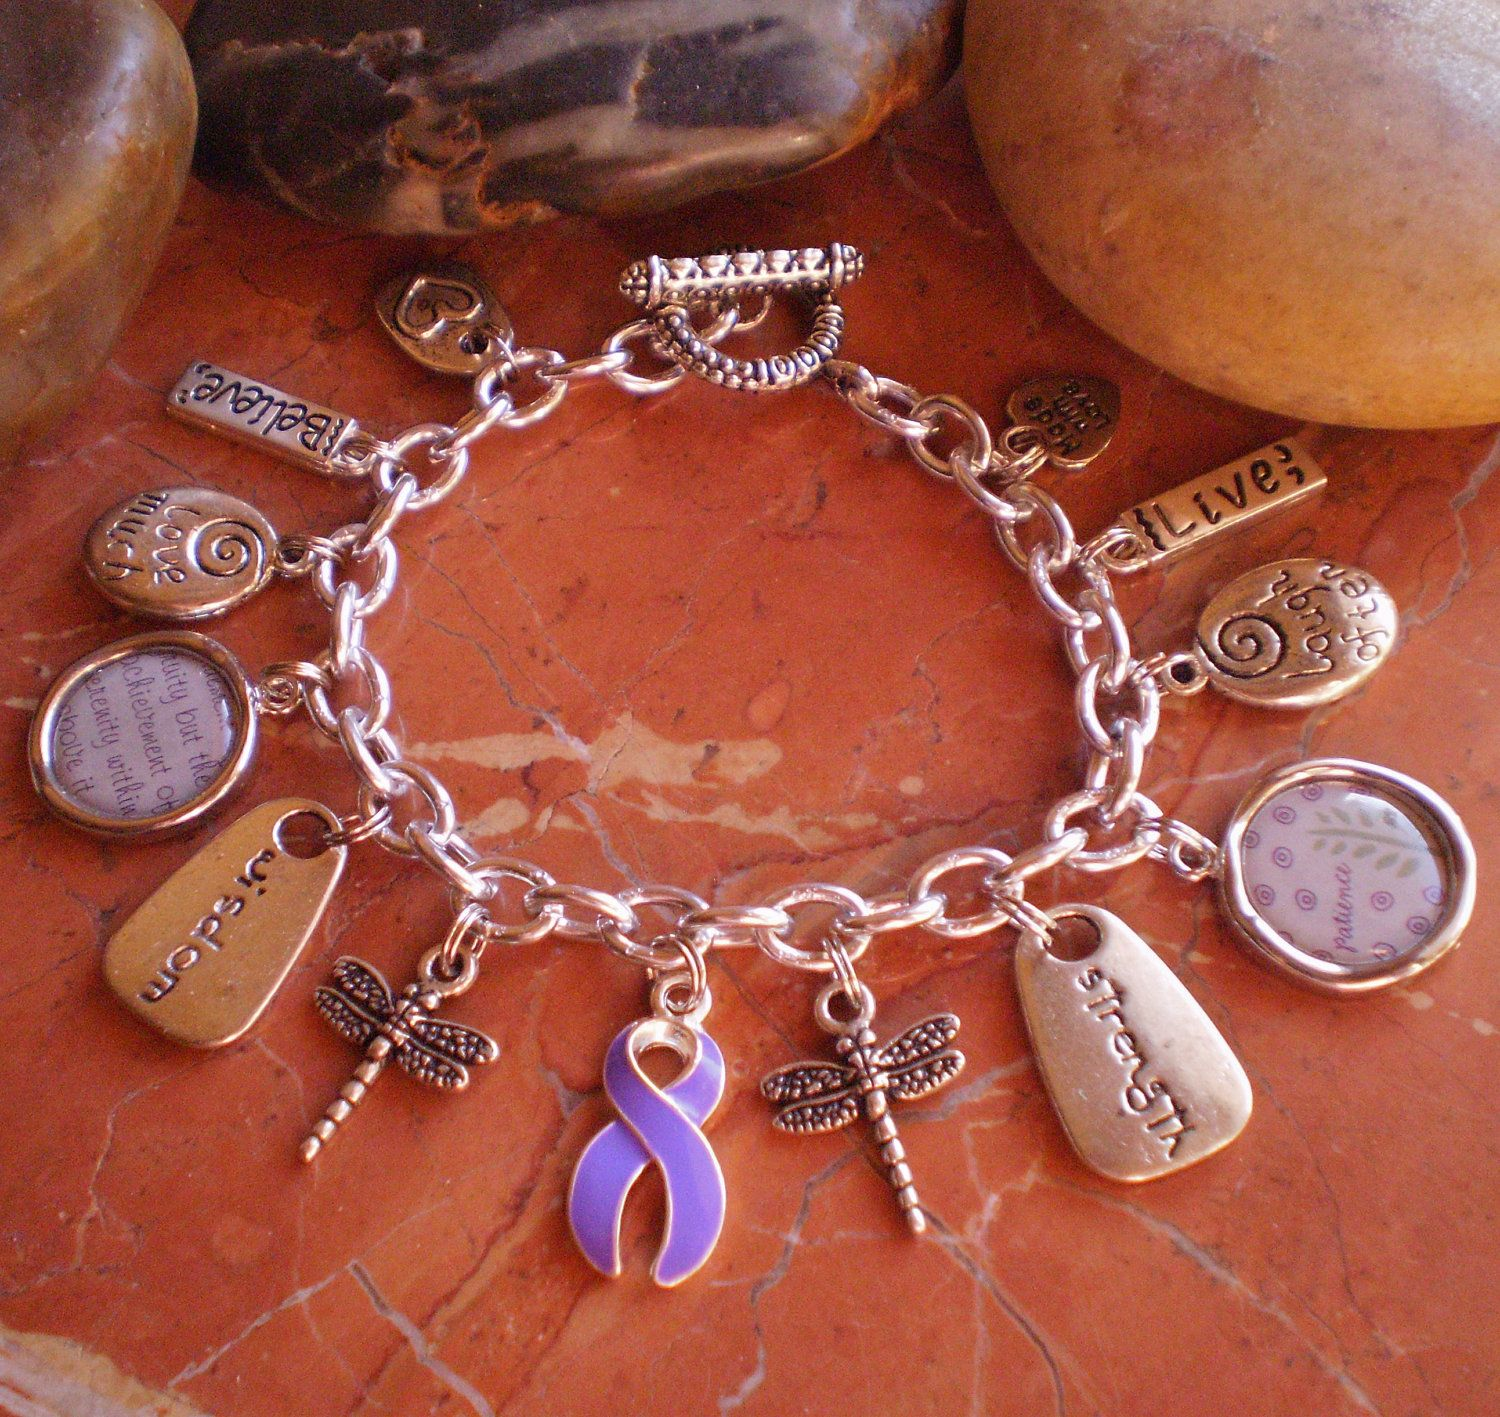 alzheimer bracelet charity charitable pack s collections i alzheimers that give packs bracelets awareness products